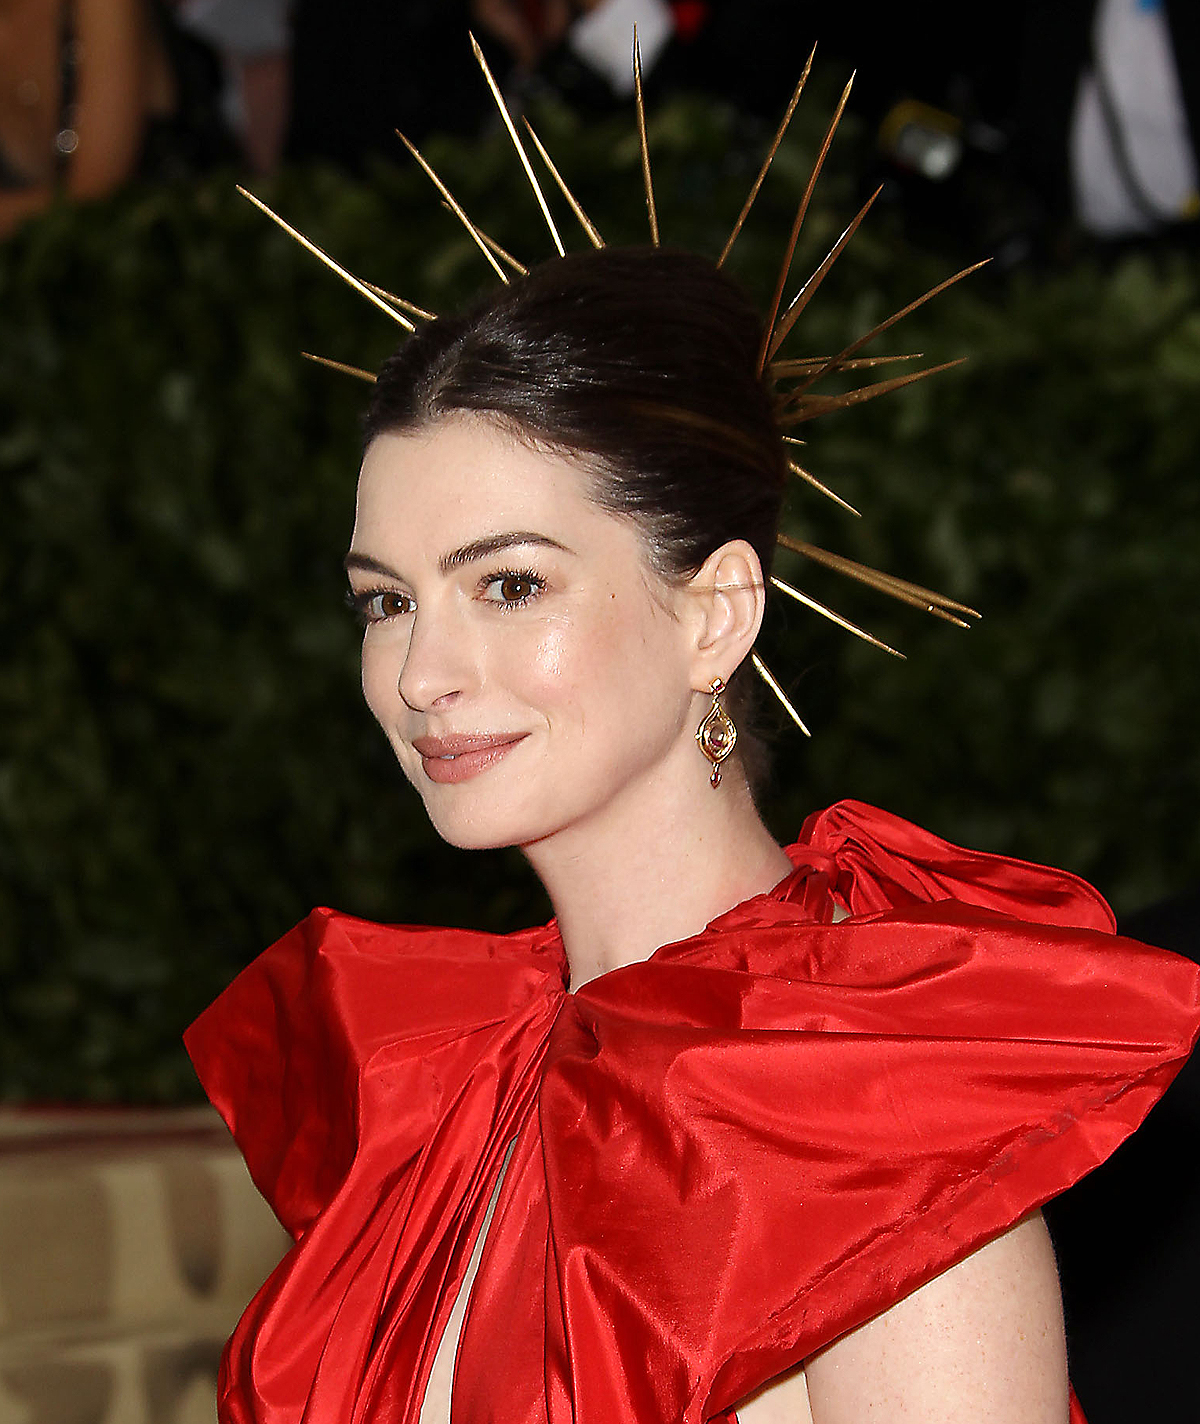 The Costume Institute Benefit Celebrating the exhibition 'Heavenly Bodies: Fashion and The Catholic Imagination' on view from May 10 through October 8, 2018, Met Gala, New York, USA - 07 May 2018